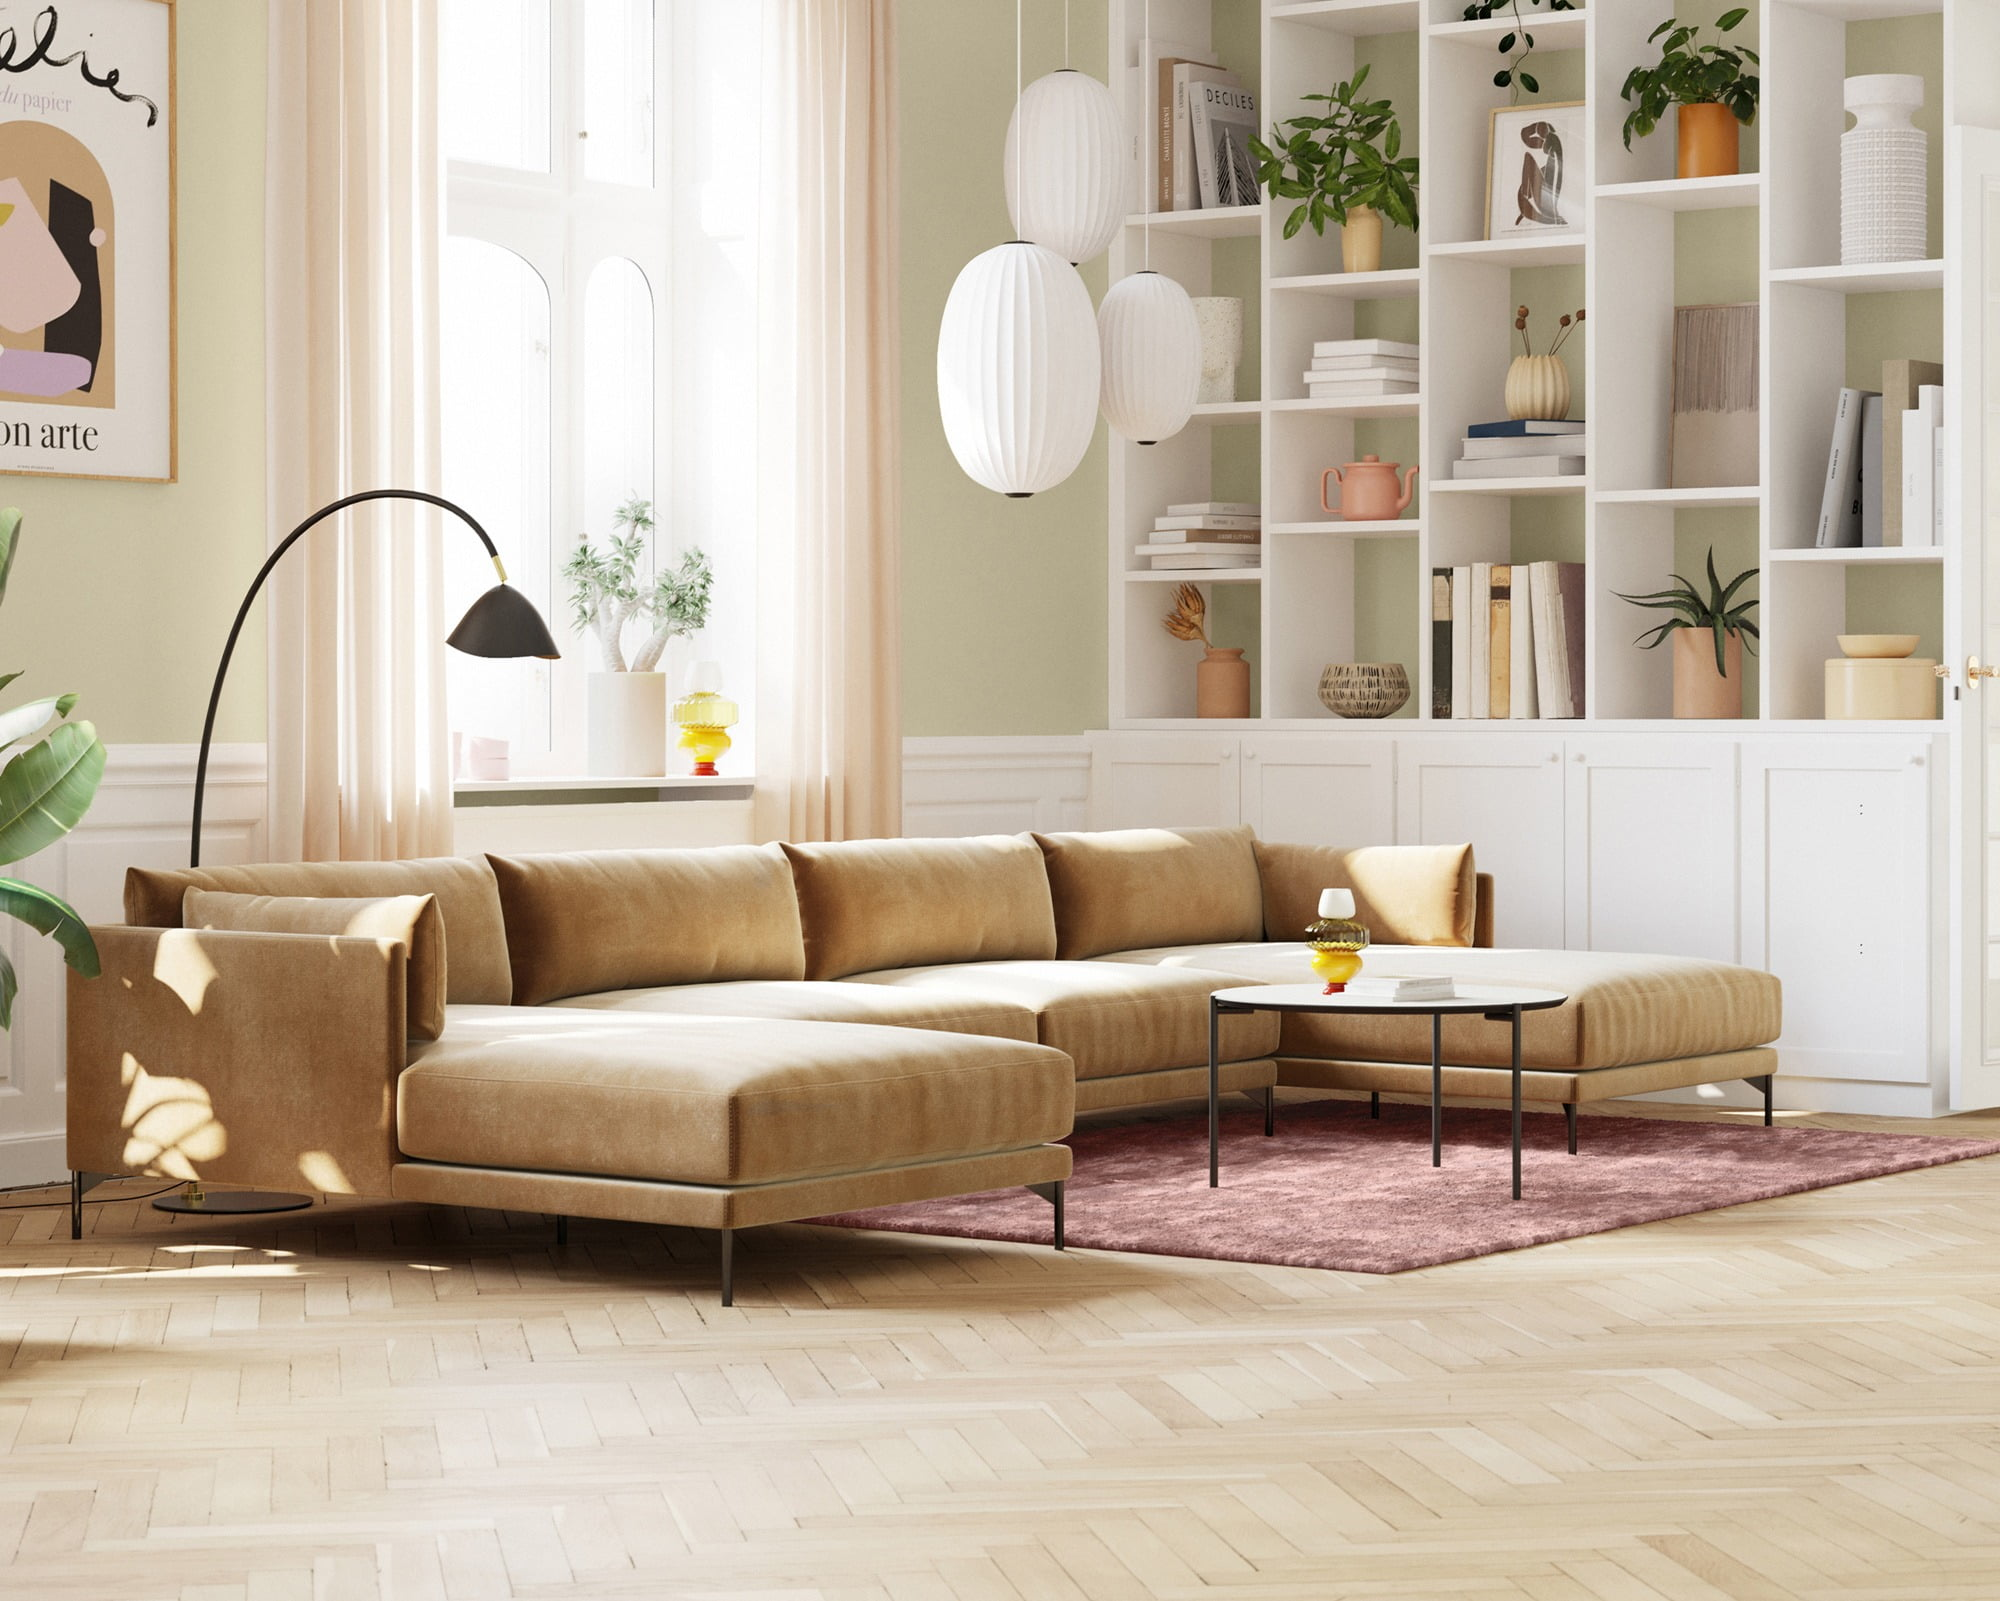 Living room, Interior design, Couch, White, Wall, Home, Flooring, Green, Floor